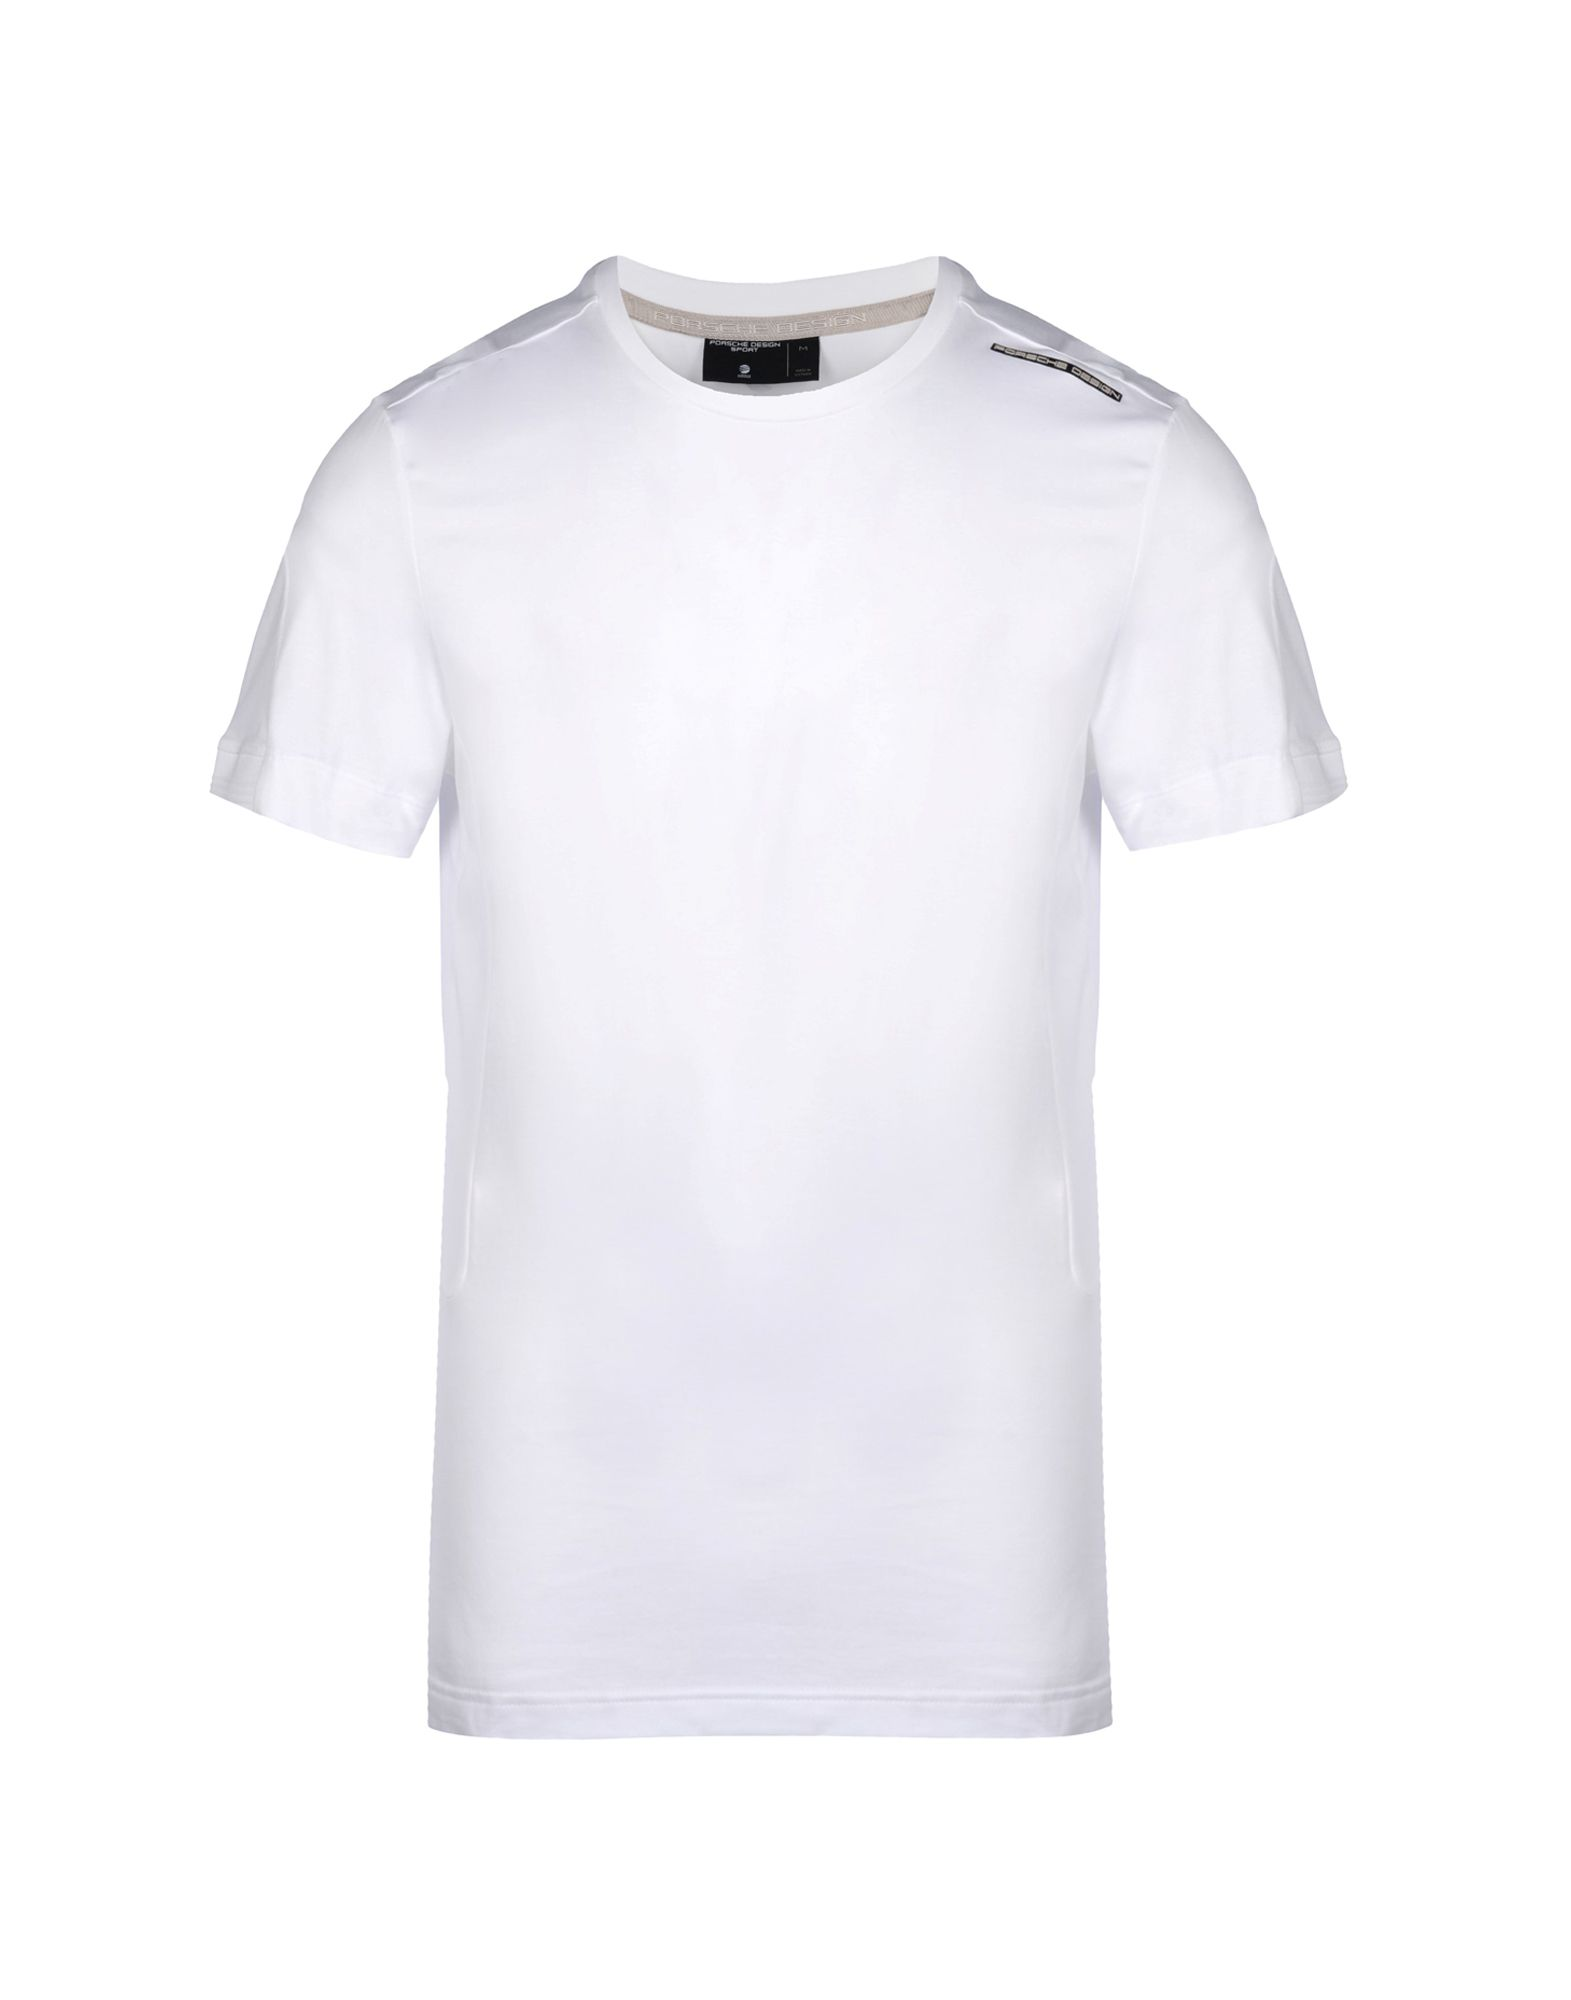 Design t shirt adidas - Porsche Design Sport By Adidas Men Spring Summer And Fall Winter Collections Shop Online At Yoox